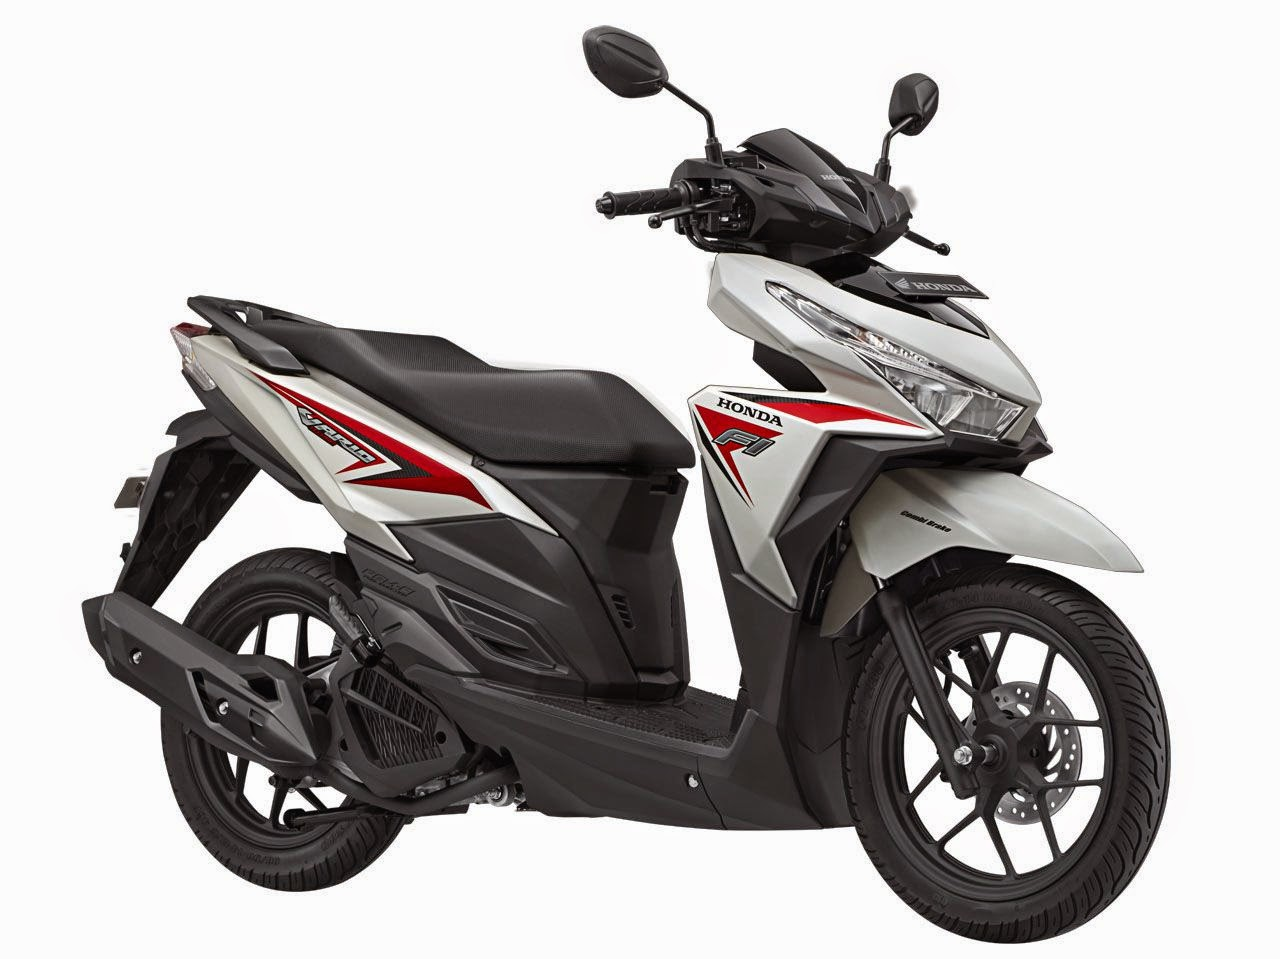 modifikasi beat with Honda Vario Esp 150 Cc And 125 Cc 22 on jazano files wordpress   2008 11 dragon Ball Gt 007 Goku Super Saiyajin 4 Y Baby furthermore Free Download Employee Work Schedule additionally 5635 besides Cb500x Accessories Thailand additionally Warna Motor Beat Cbs Iss.